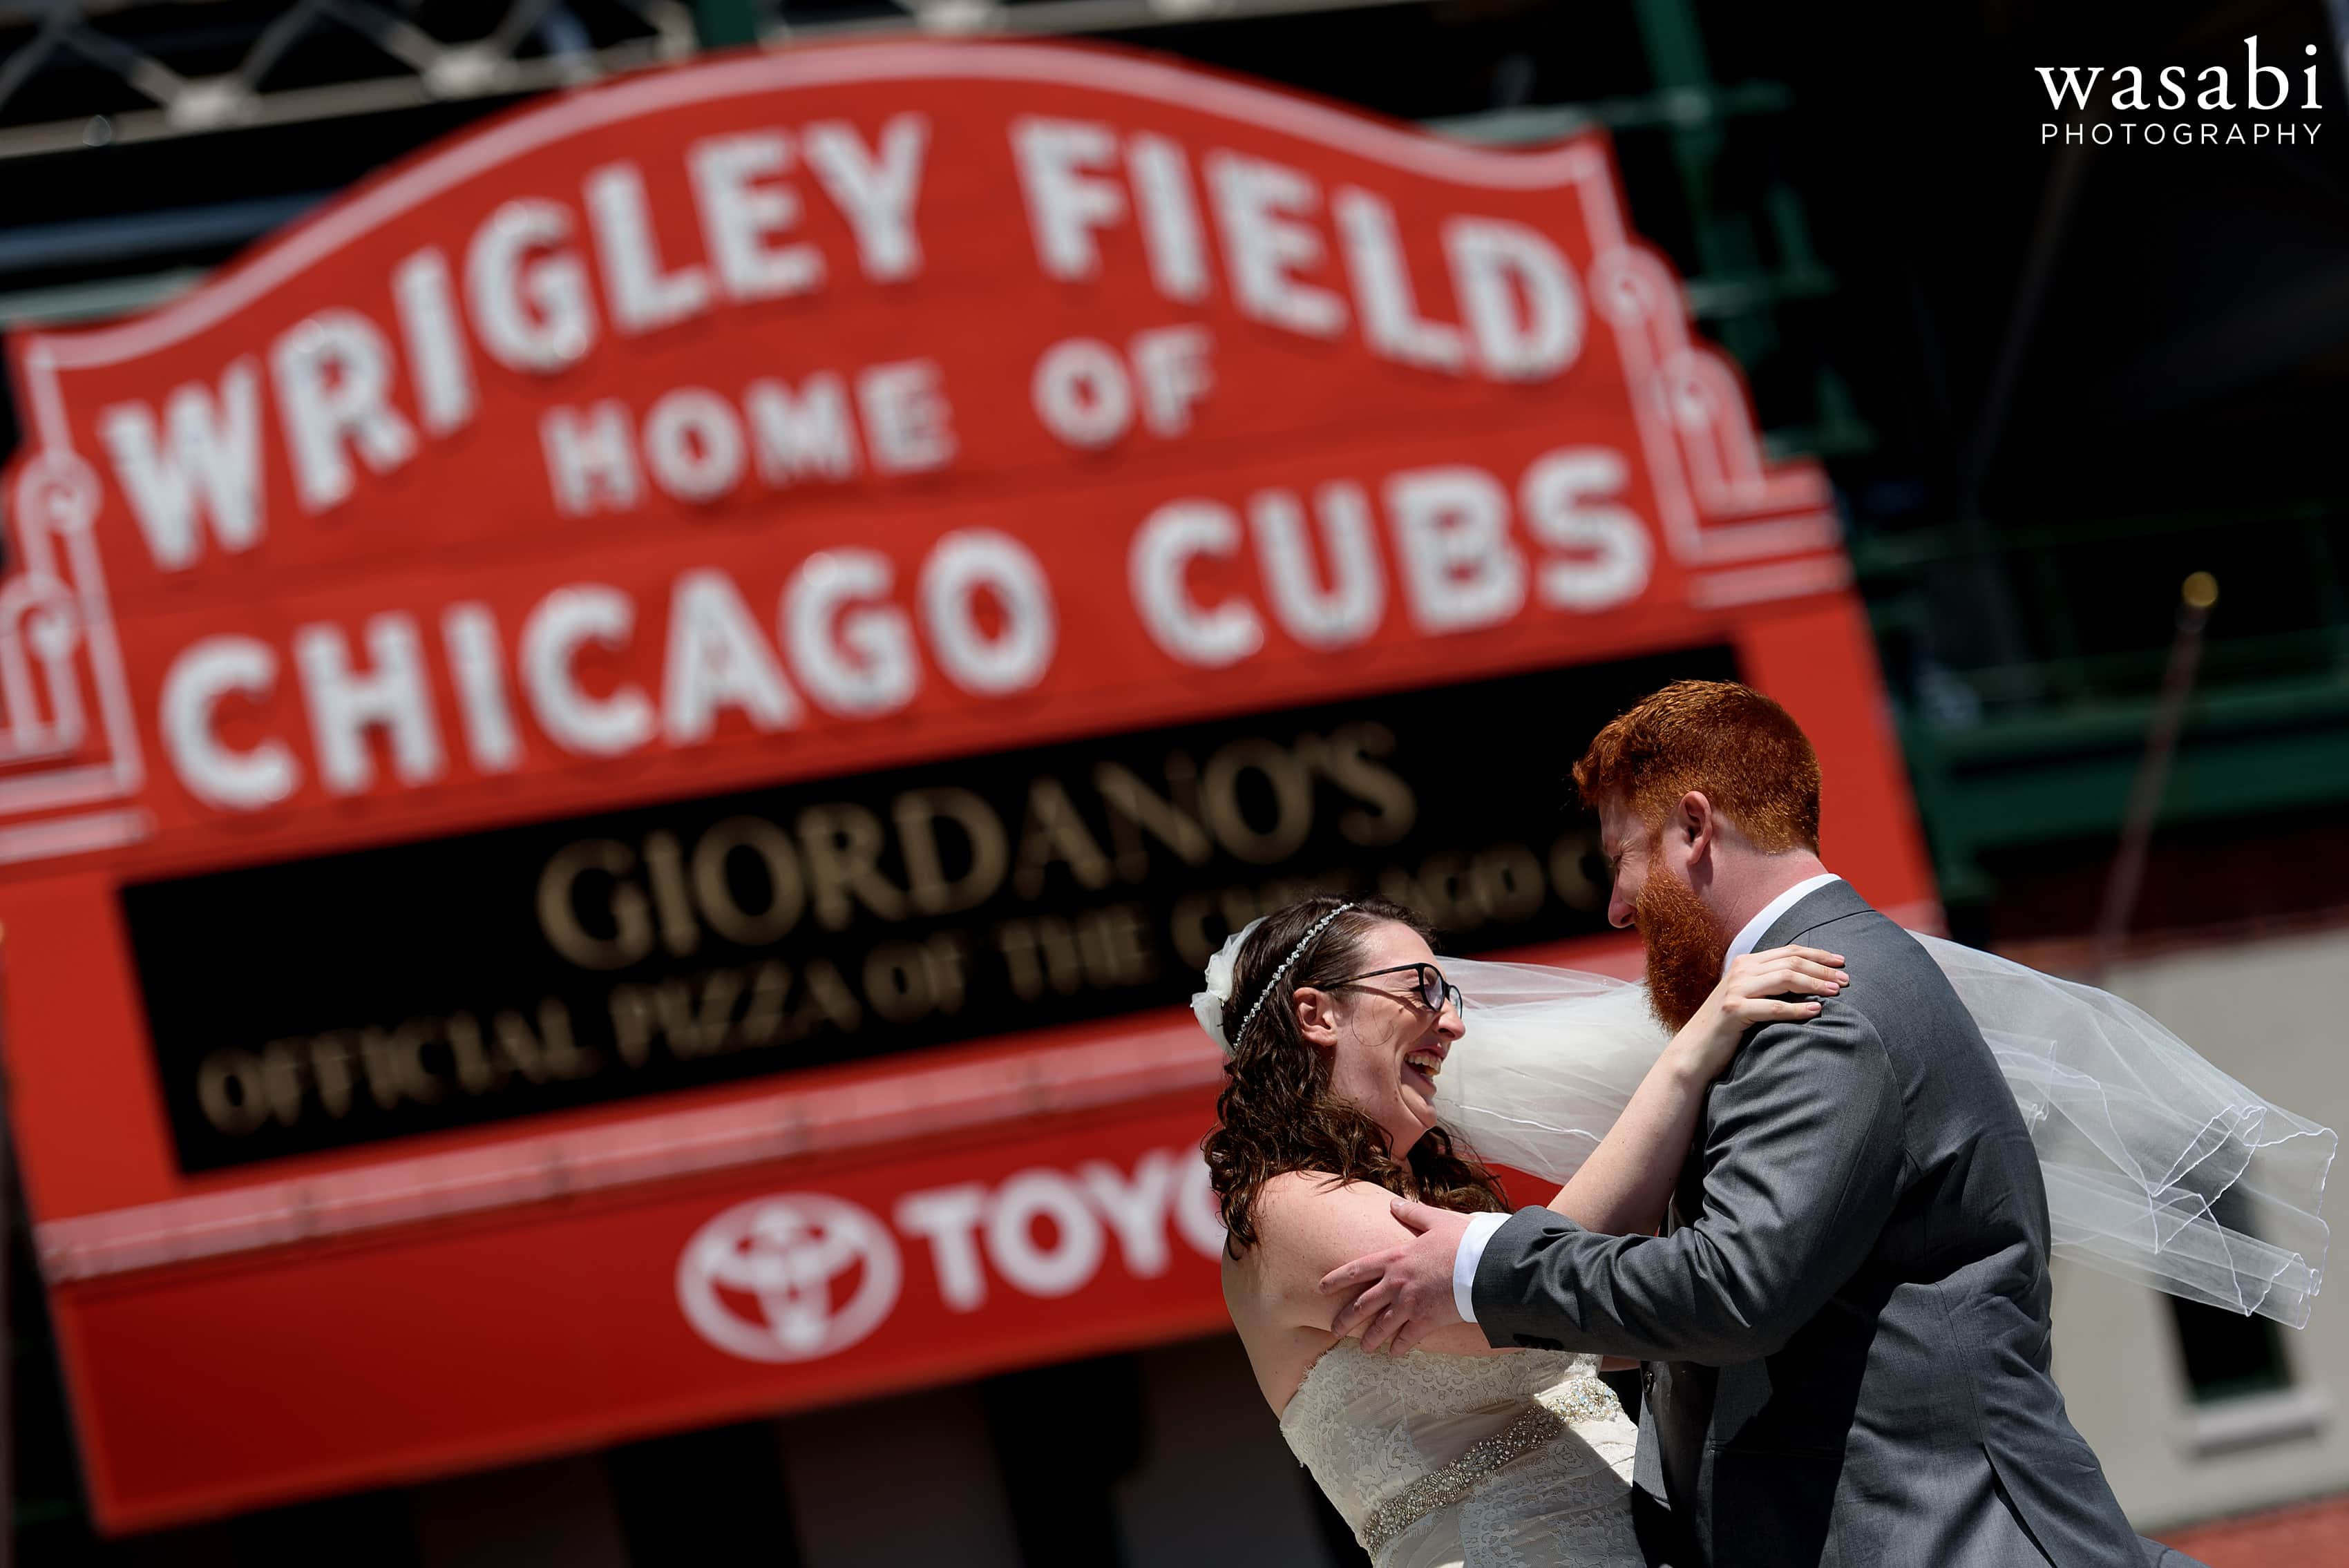 A bride and groom pose for a wedding photo in front of the Wrigley Field marquee sign on their wedding day